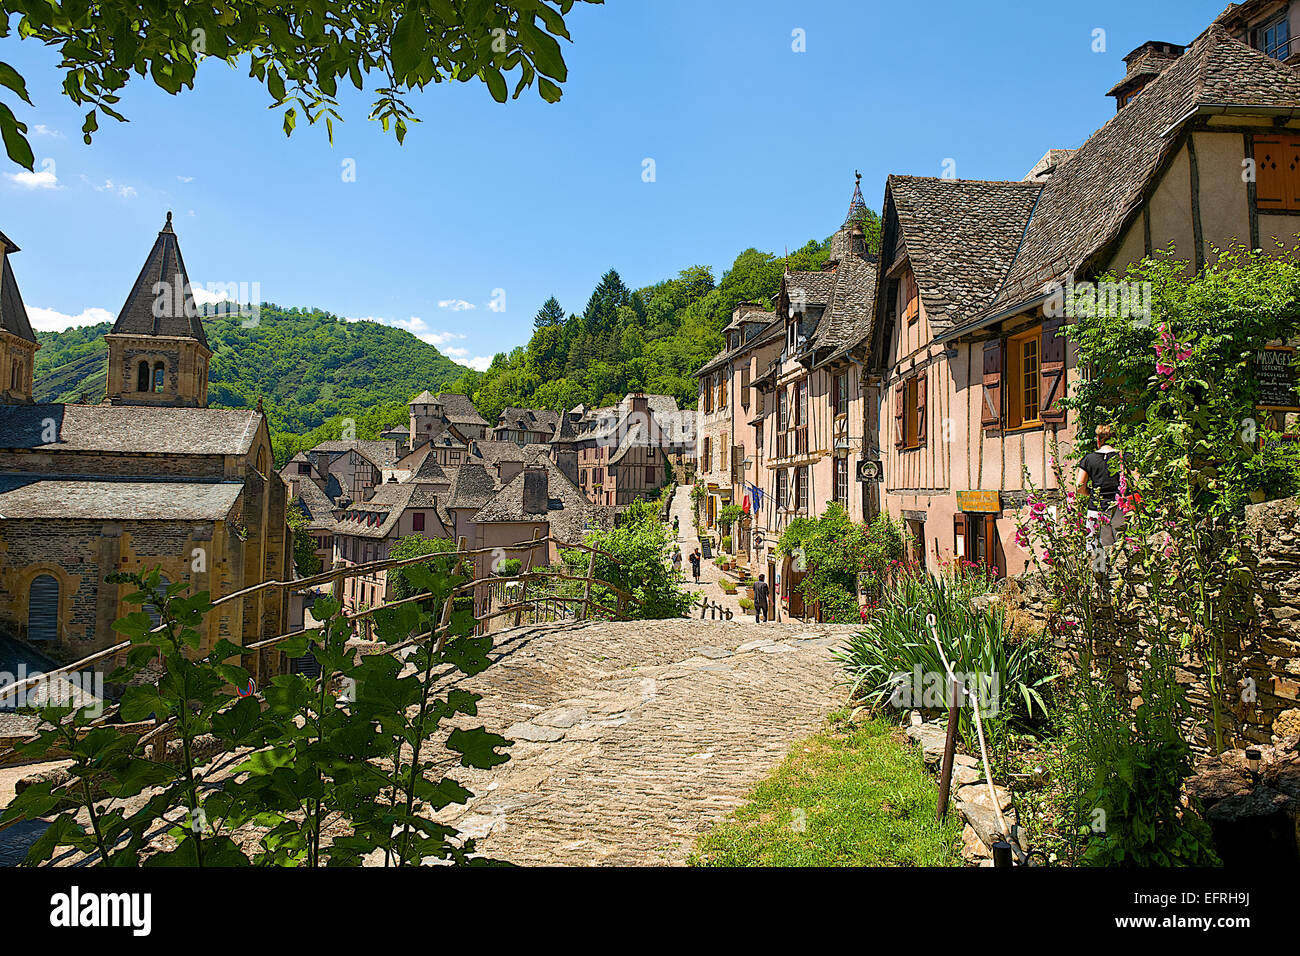 conques village, france stock photo: 78579806 - alamy